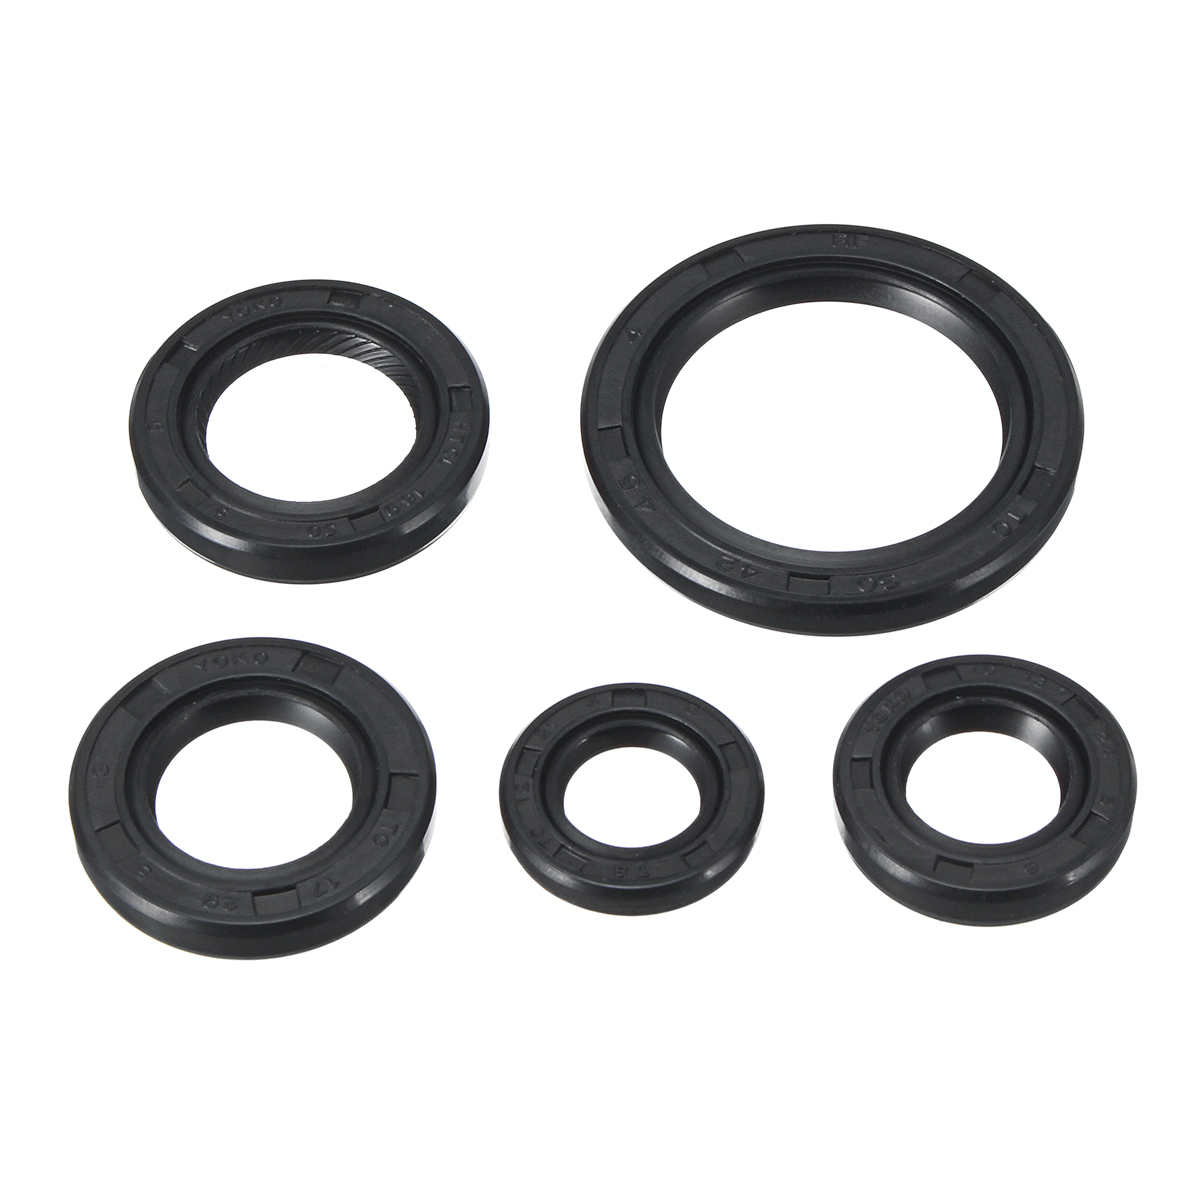 110cc Engine Oil Seal Set Kit Loncin Lifan Pit Di